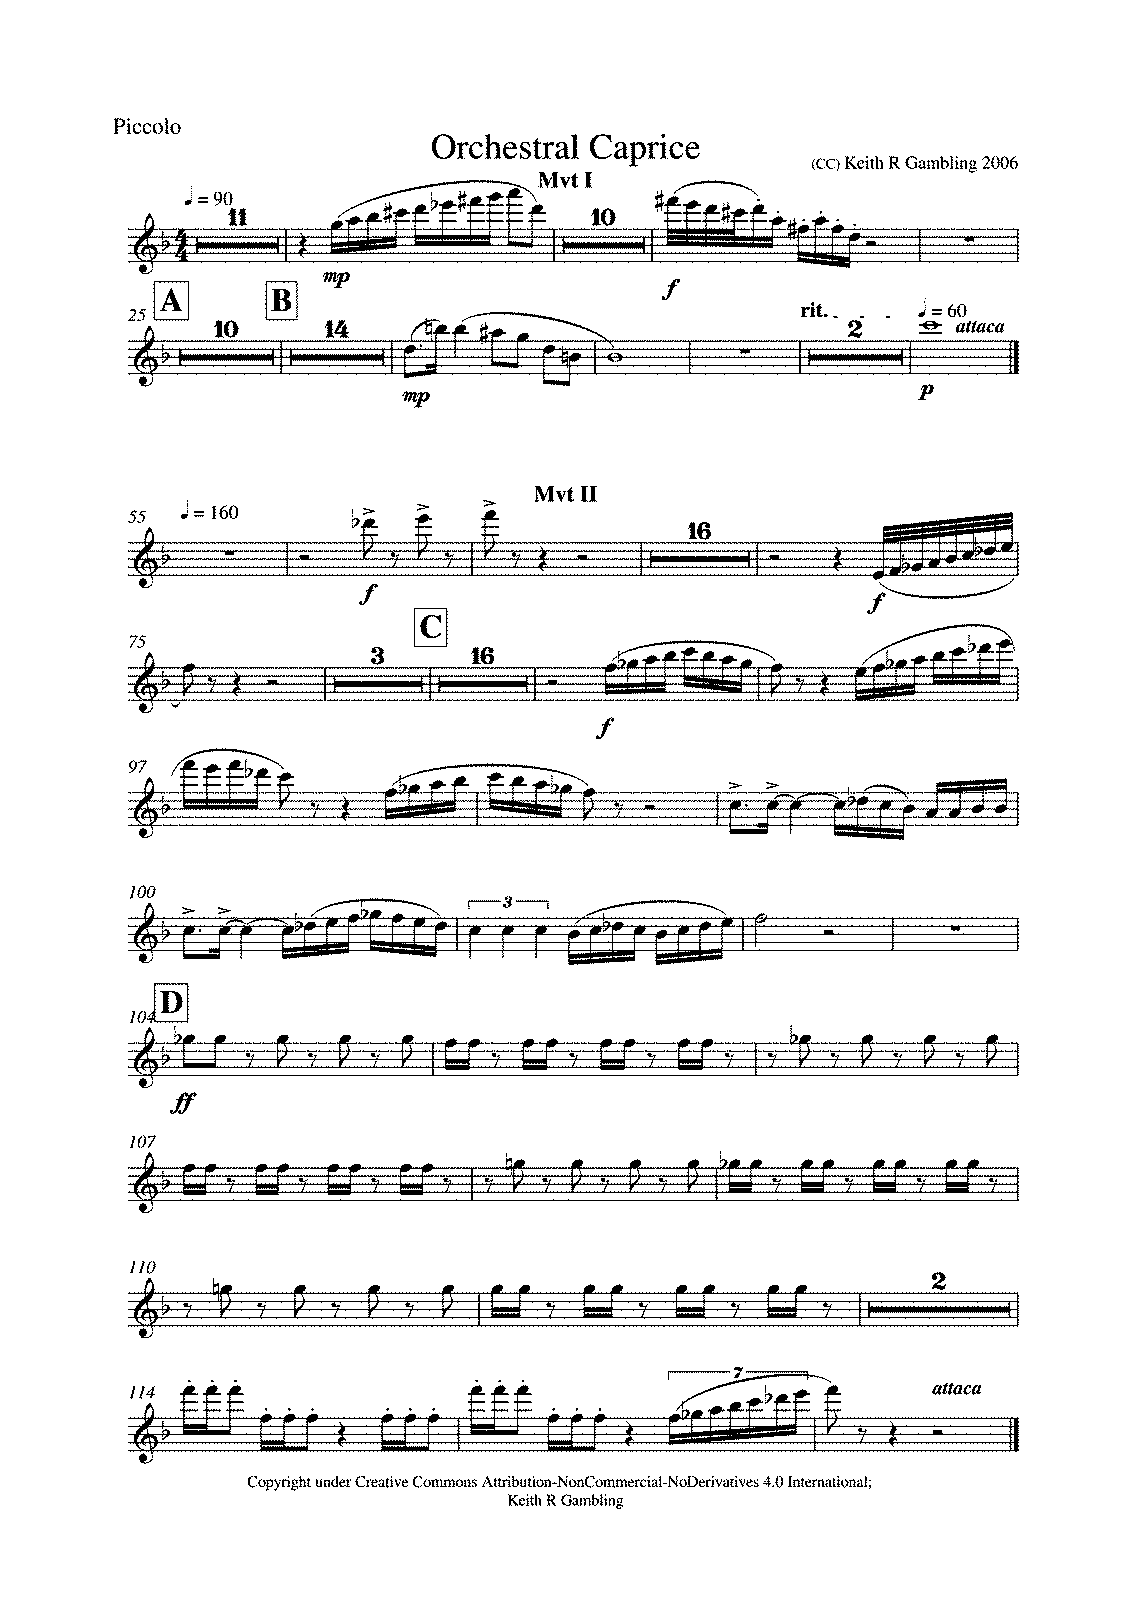 PMLP633258-Orchestral Caprice Piccolo Gambling Keith R.pdf